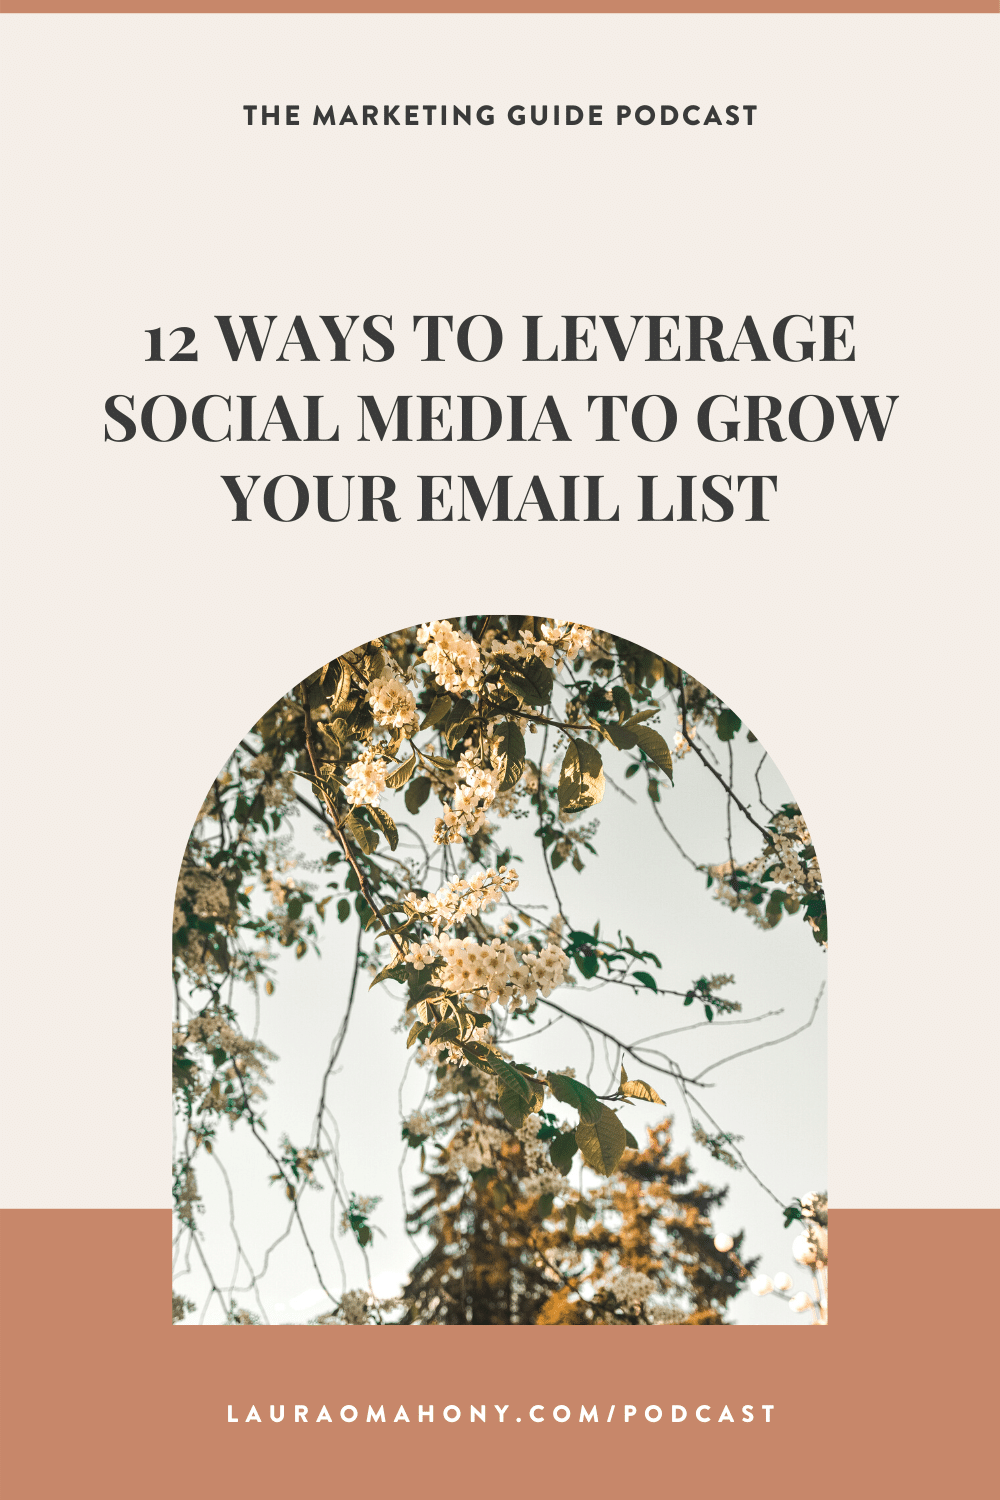 The Marketing Guide Episode 64 - 12 Ways To Leverage Social Media To Grow Your Email List